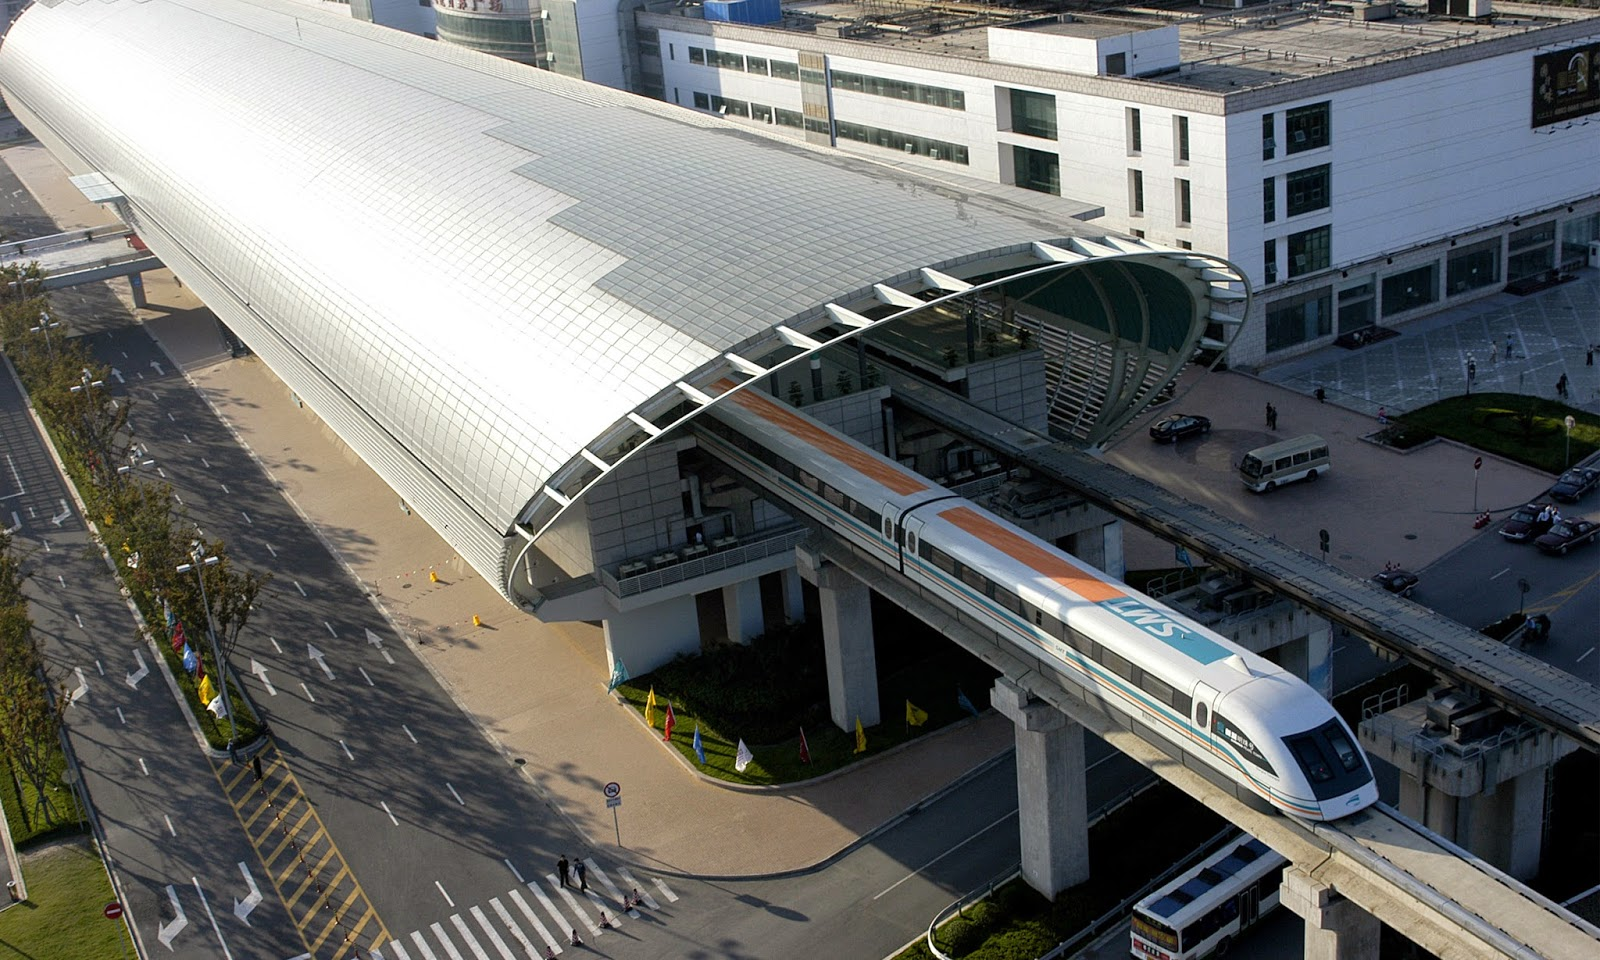 Shanghai Maglev Train - Wikipedia